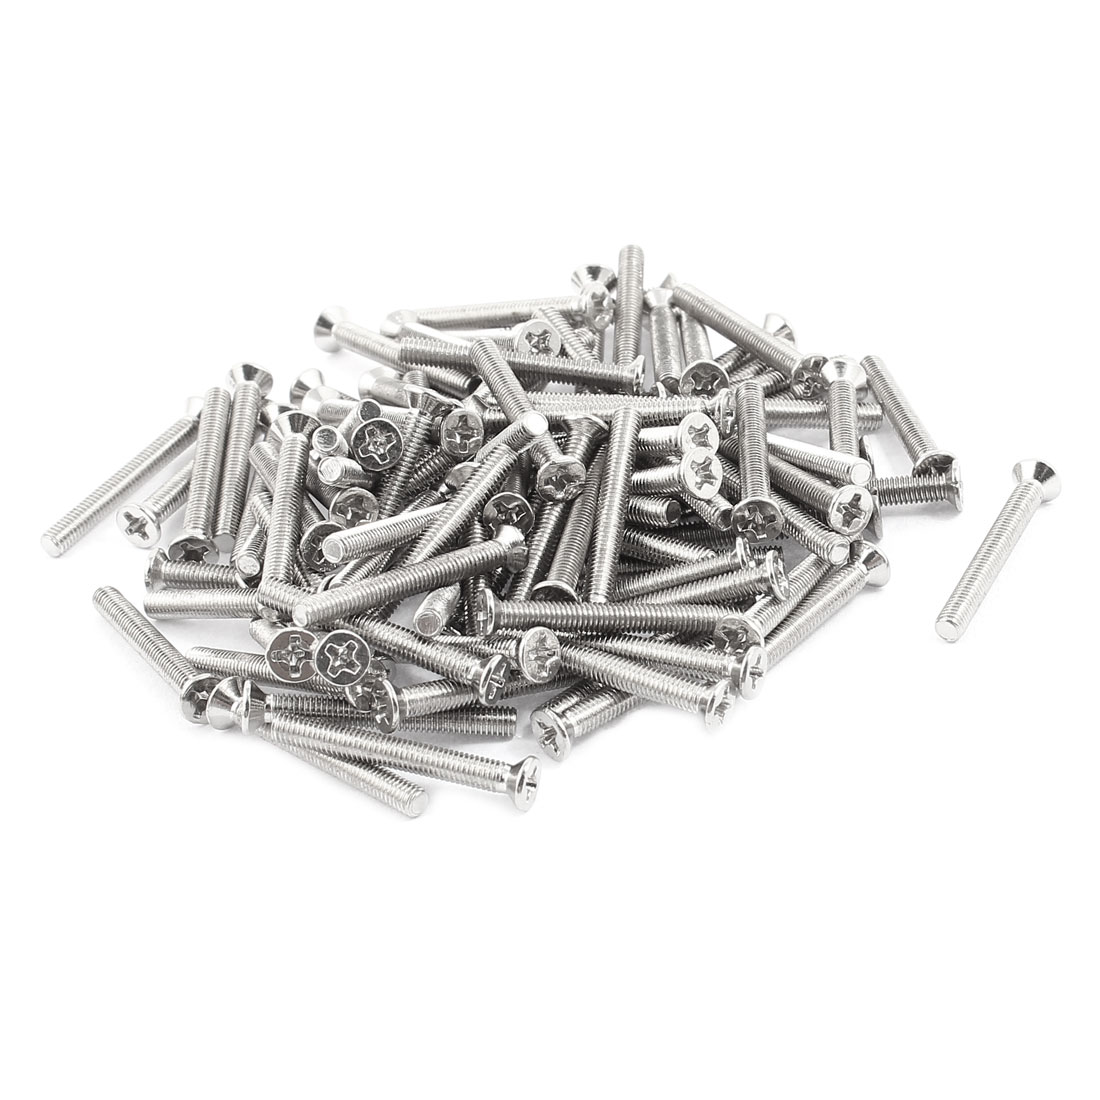 M3x25mm Stainless Steel Phillips Flat Countersunk Head Machine Screws Bolts 100pcs